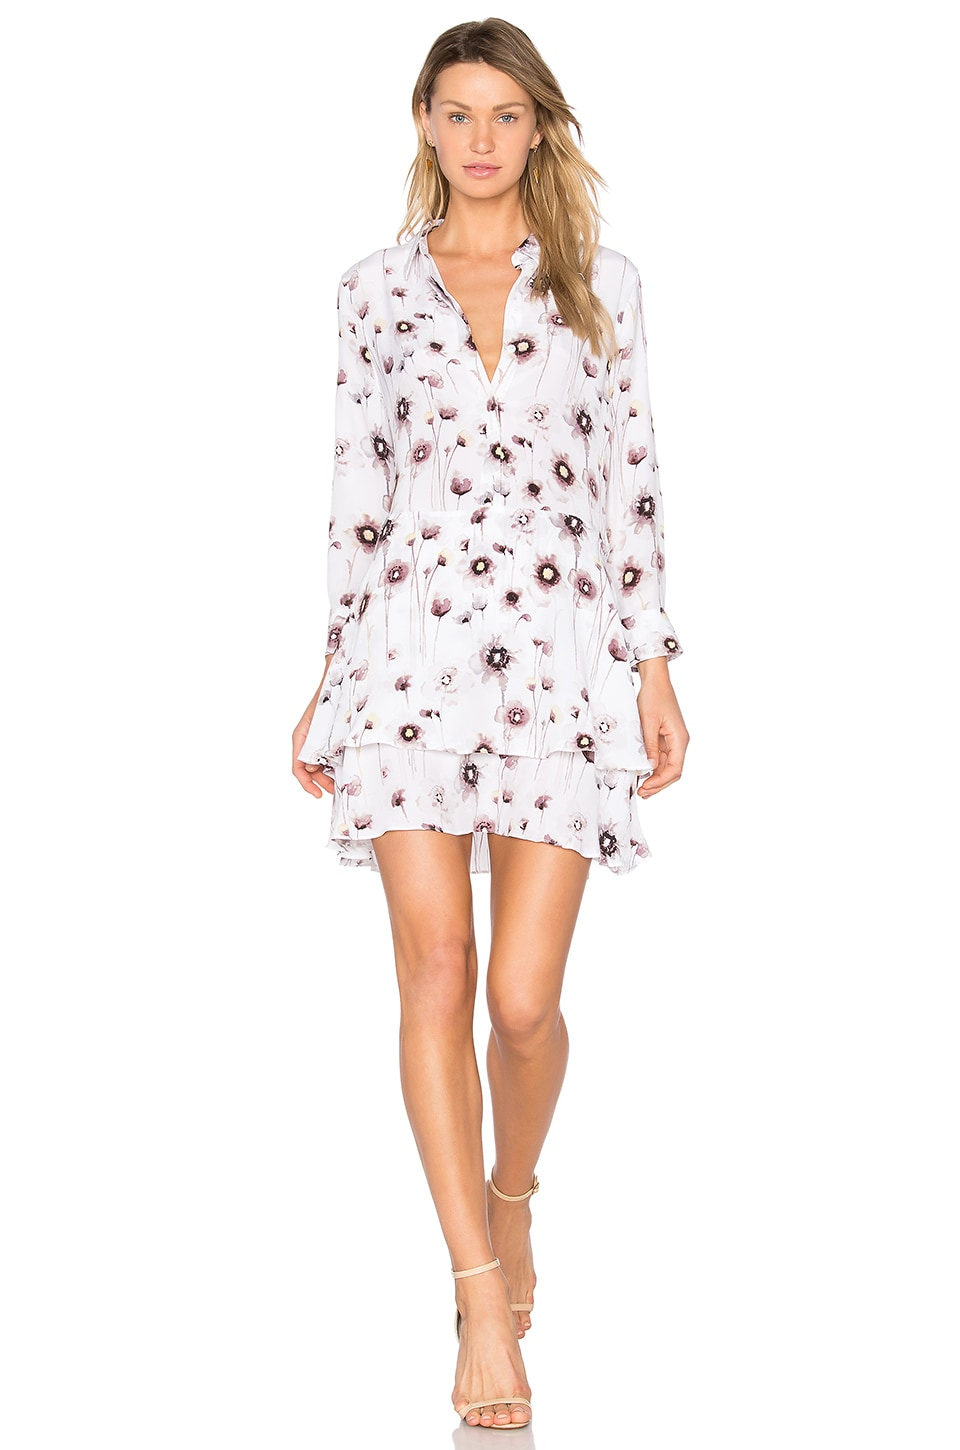 Equipment Natalia Floral Dress in Bright White Multi